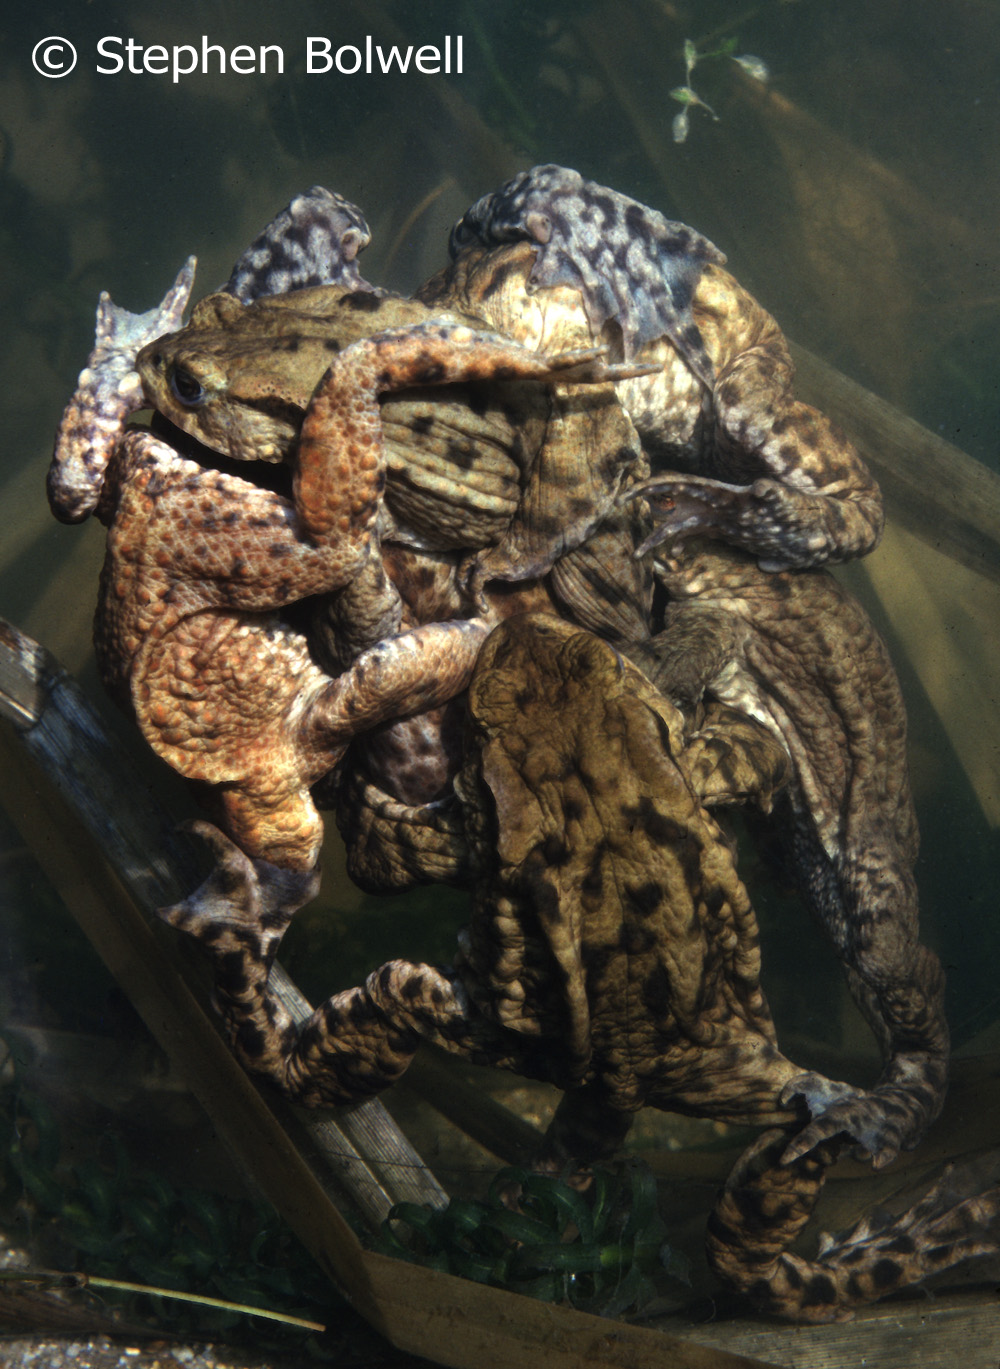 During the 1970s and 80 regularl photgraphed toads visiting my parents pond, but for many years common toad numbers in Britain have been in steep decline;and  I find it rather depressing